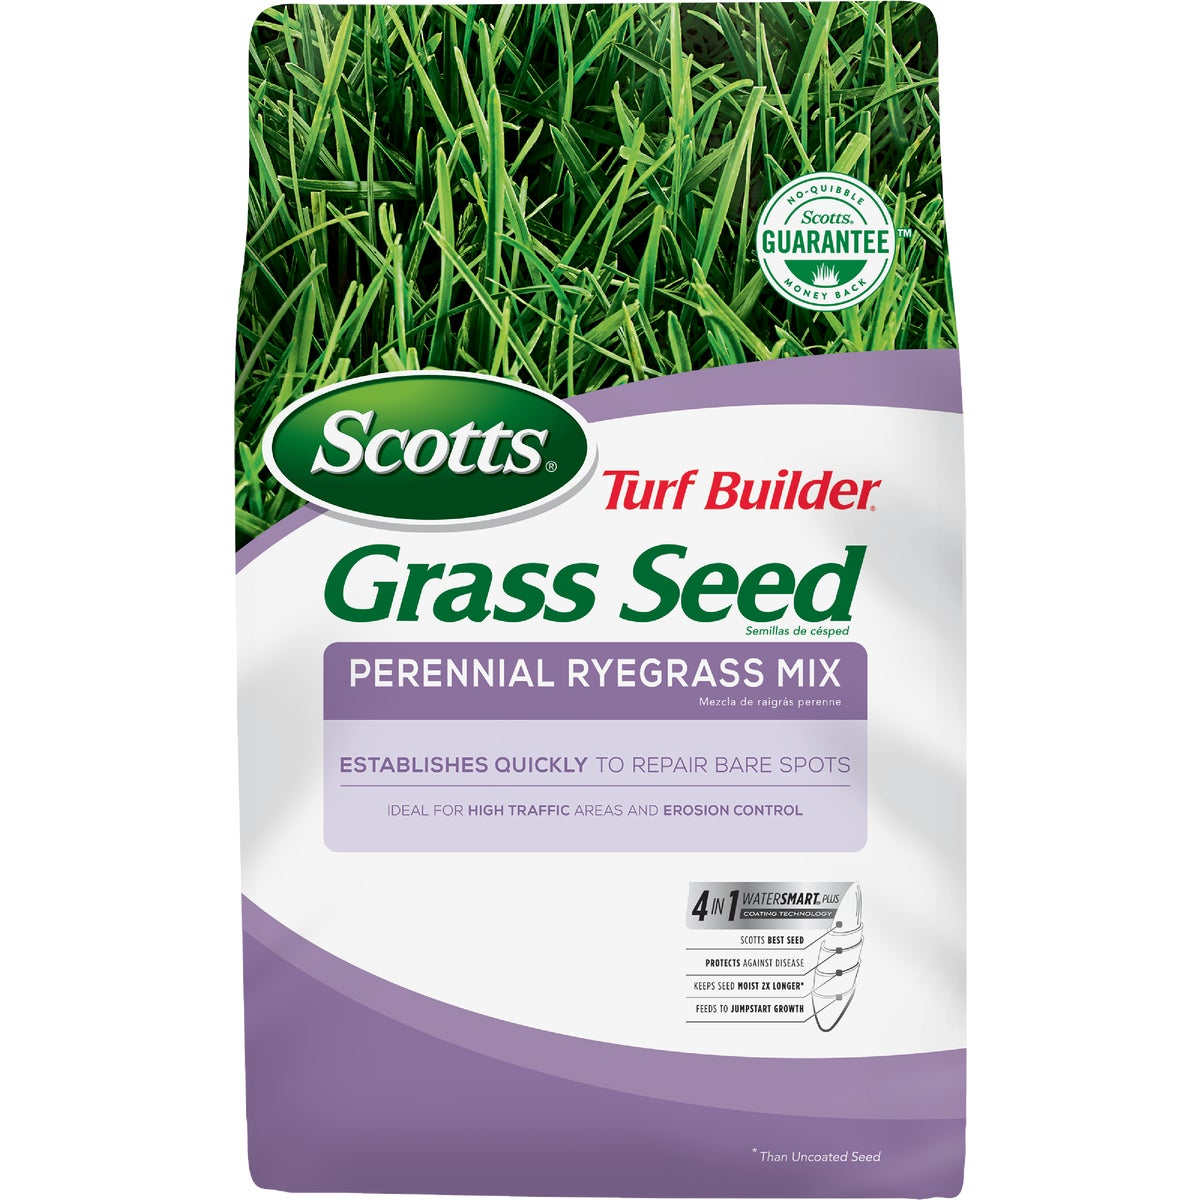 7LB TB PERENIAL RYEGRASS - 18363 by Scotts Company